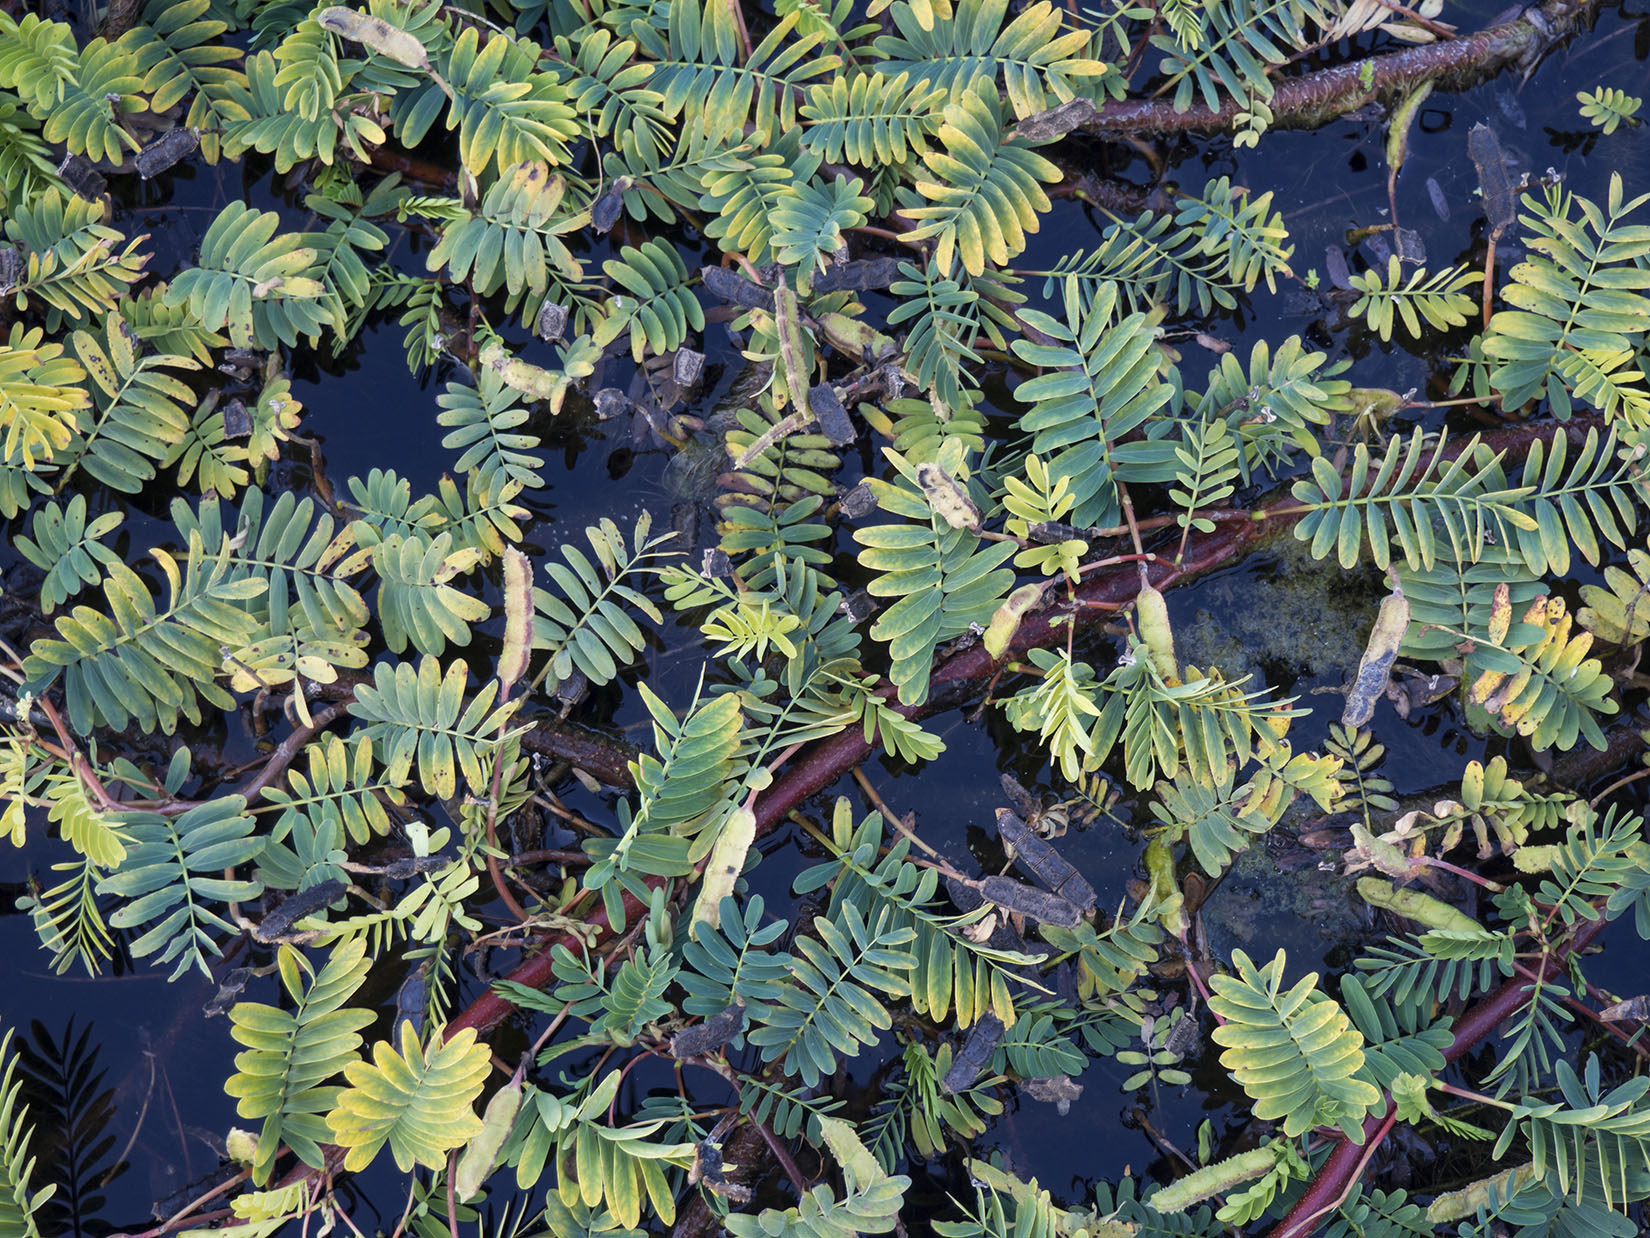 Leaves in a Pond